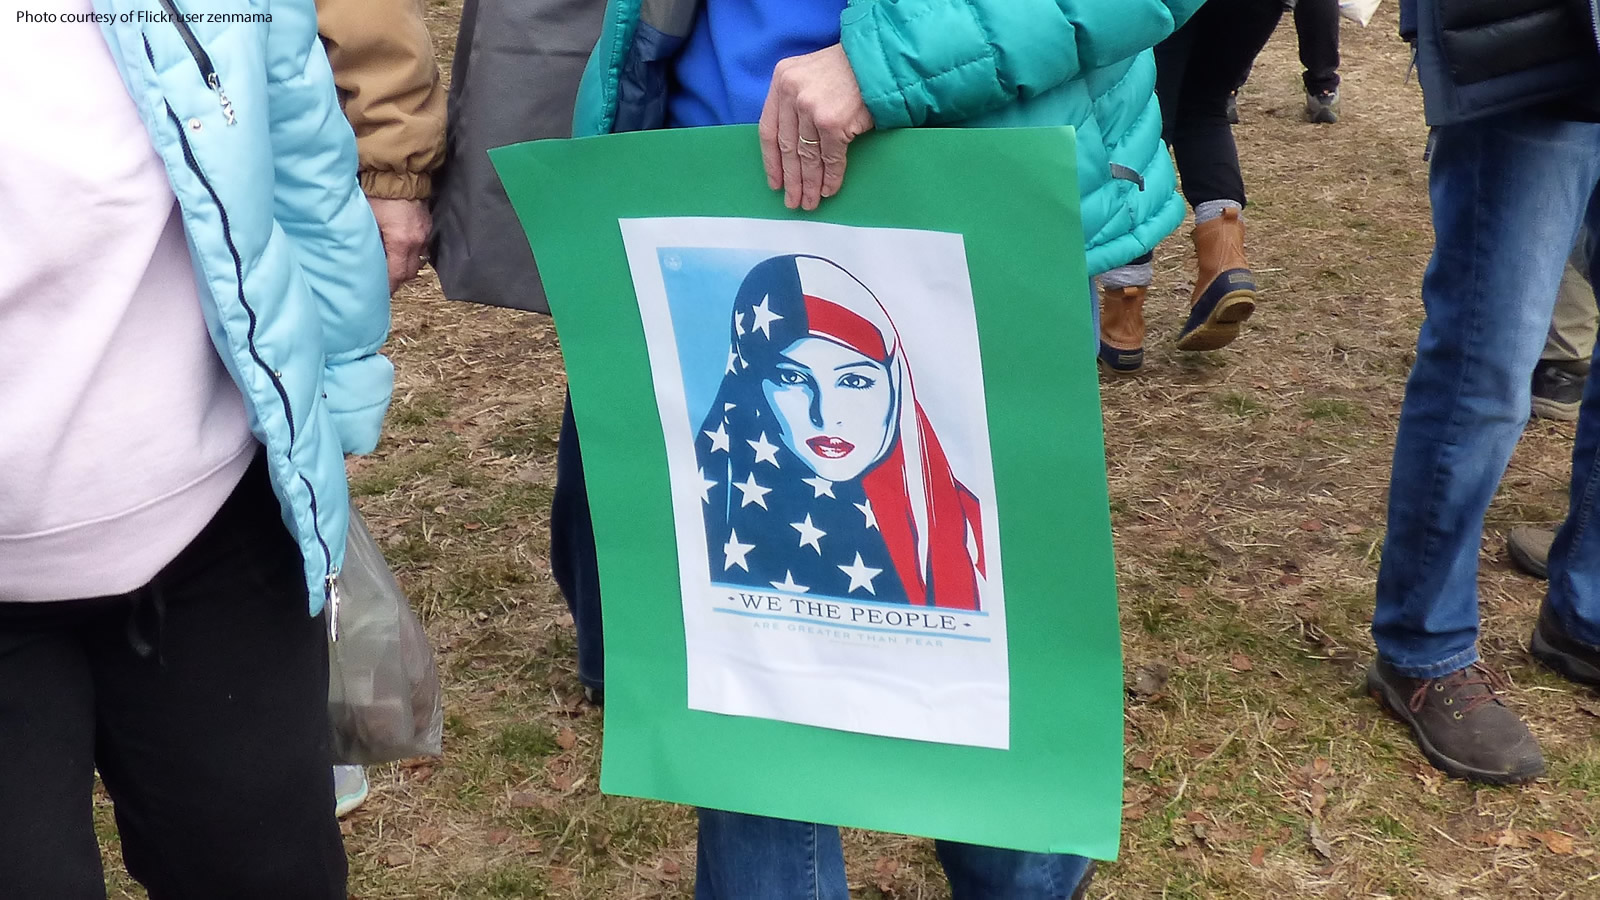 Women's March protester holding an American flag hijab poster